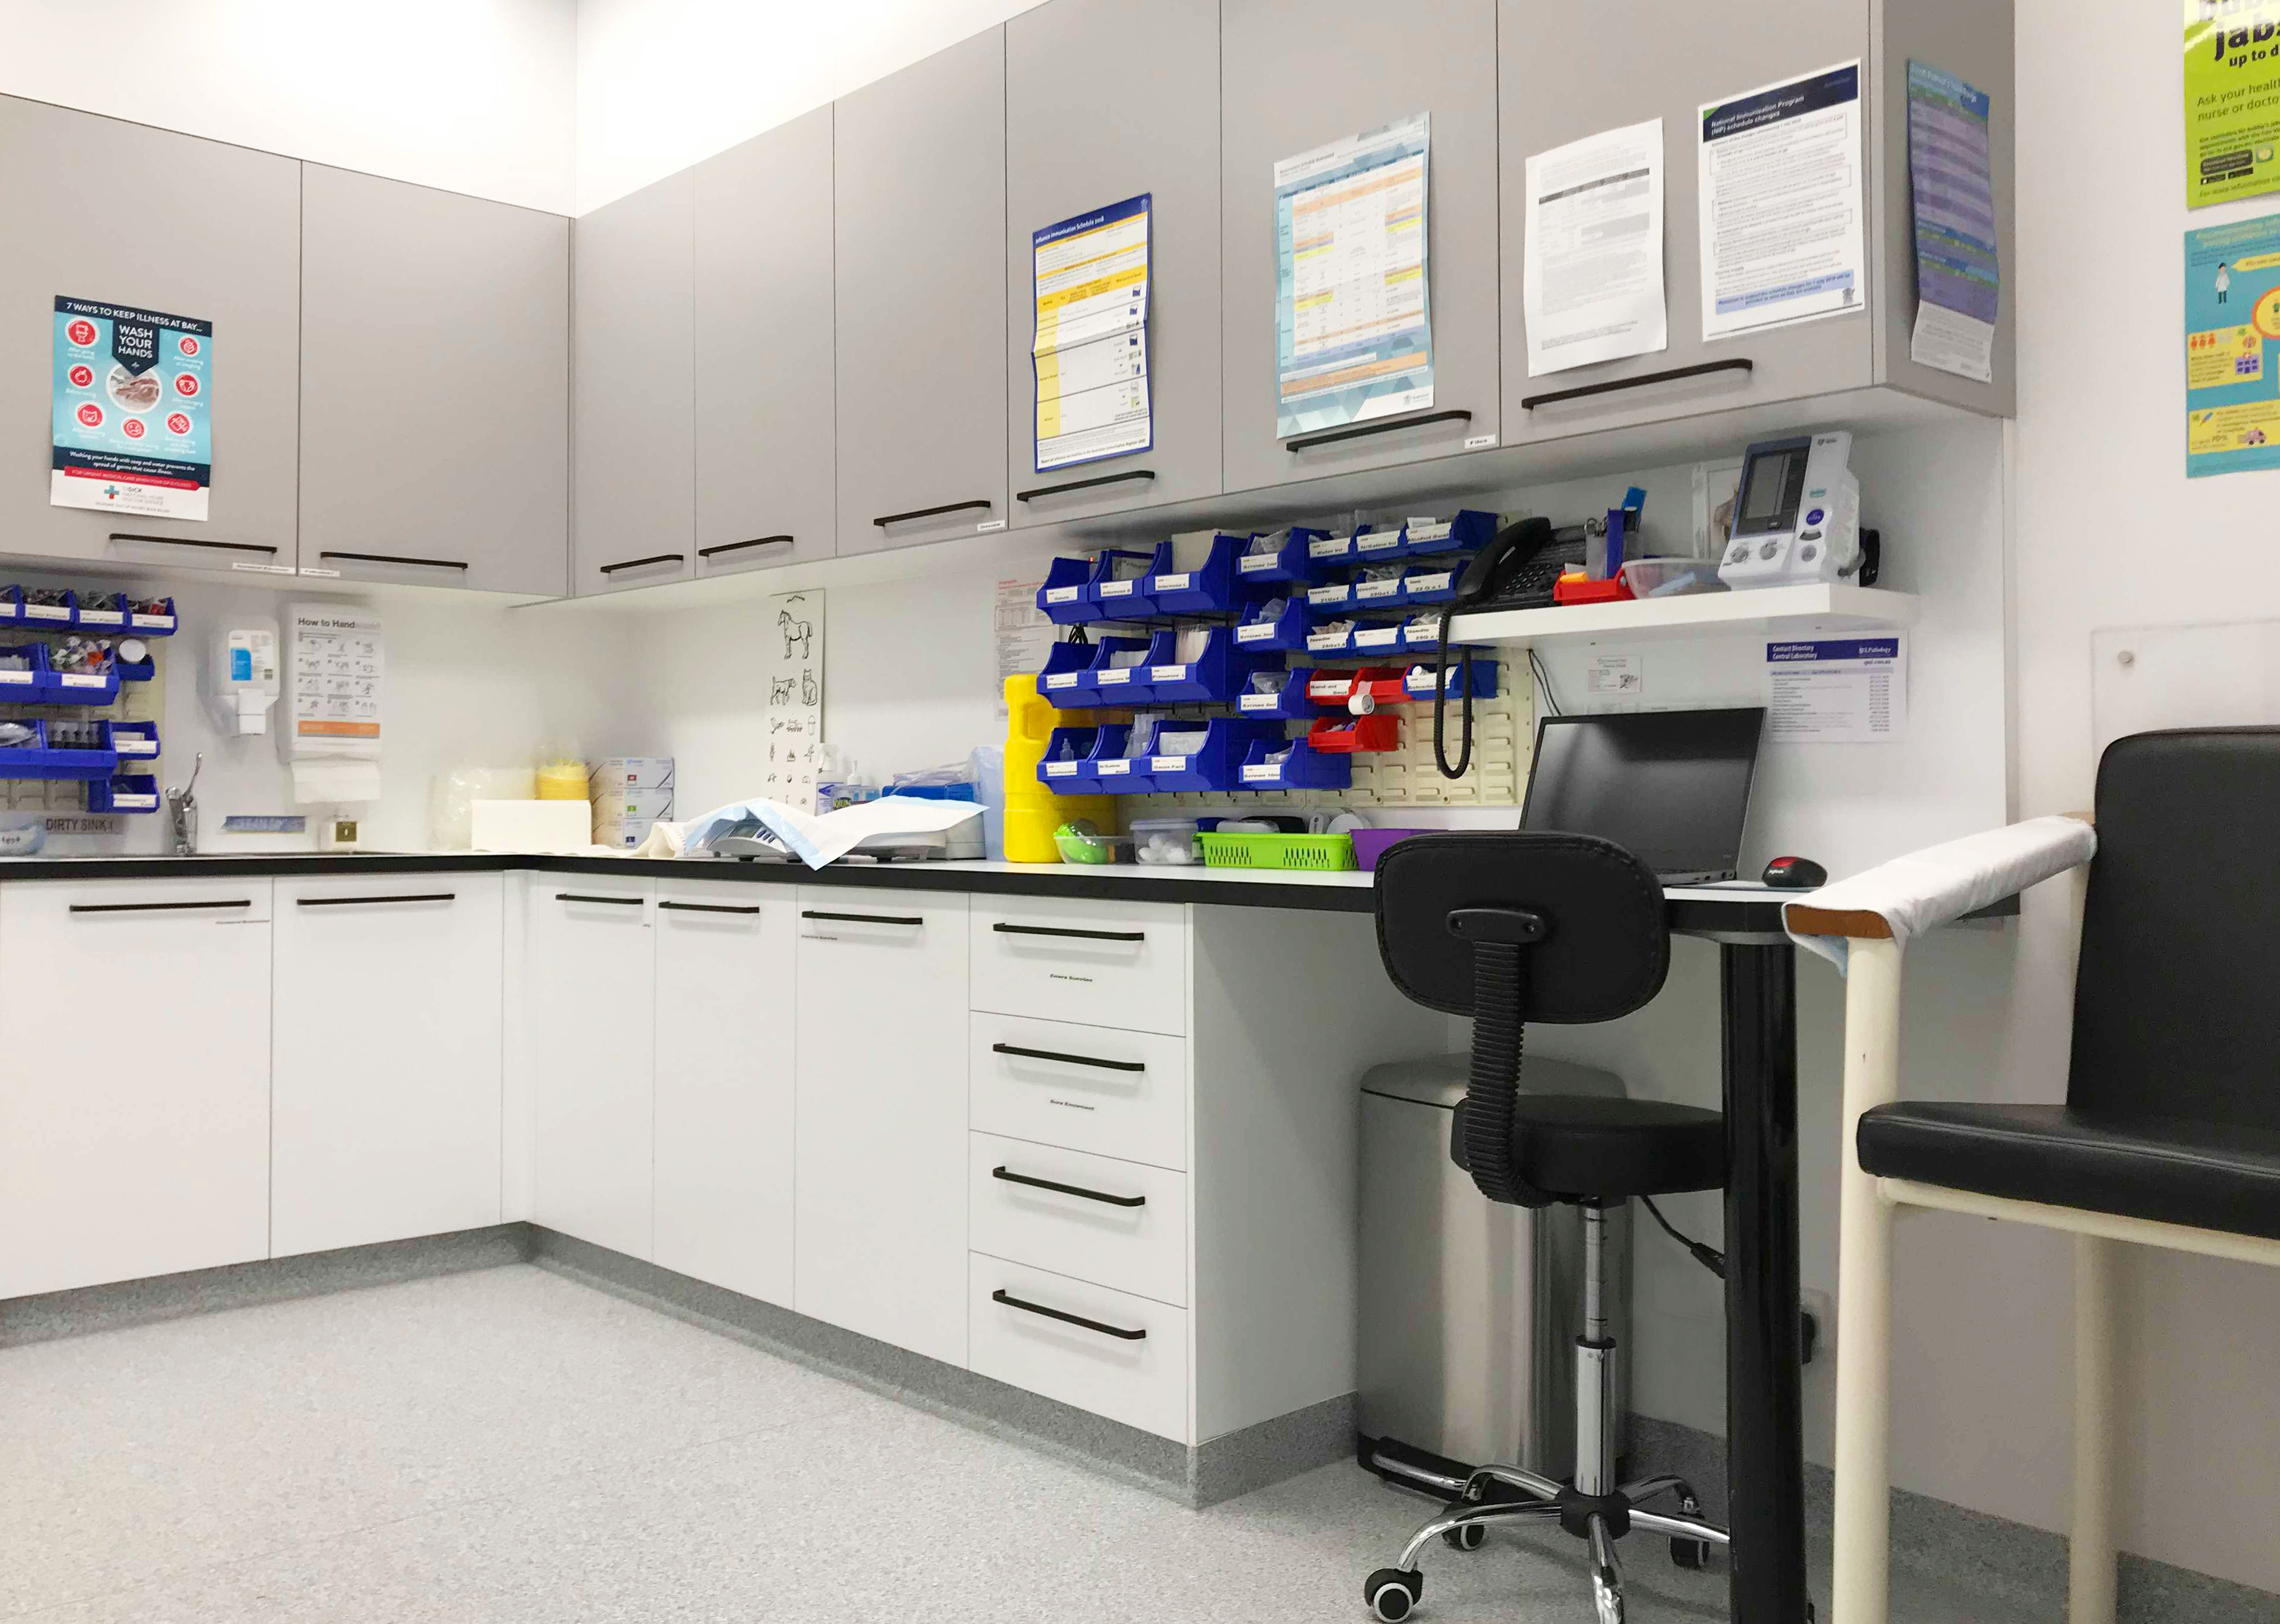 Sunnybank Doctors GP health care vaccinations immunisations checkups health assessments